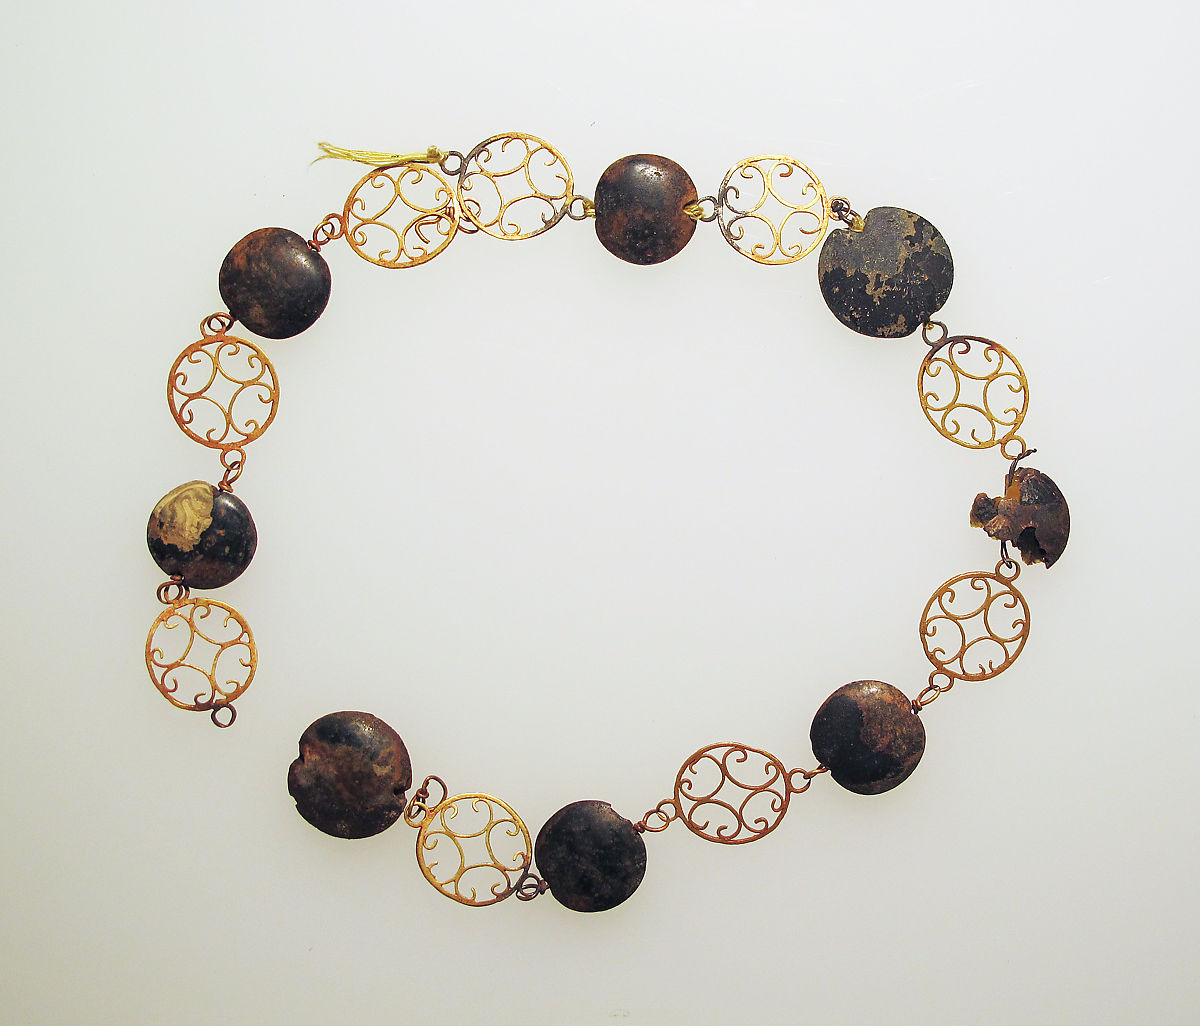 Necklace with paste beads, Gold, glass paste, Roman